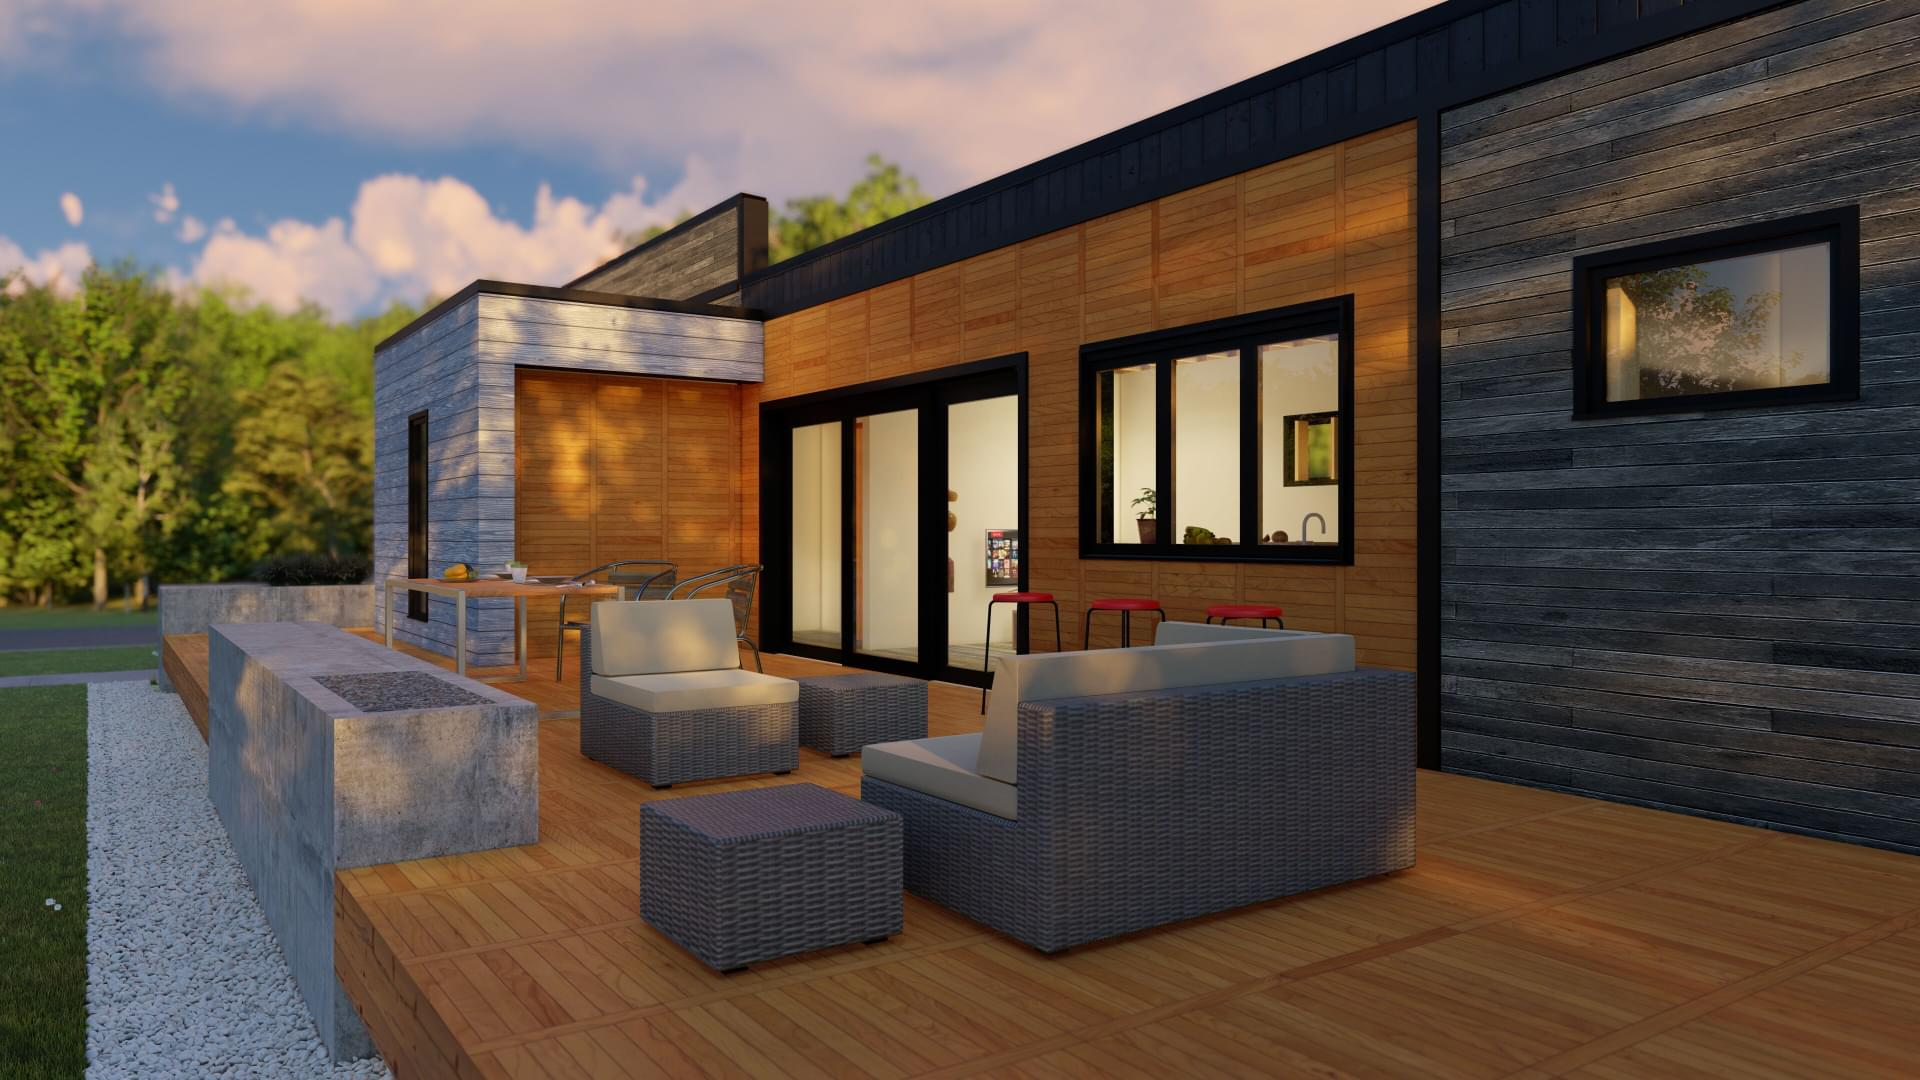 Slate Homes Premium Prefab and Modular Homes THE FUTURE OF HOUSING